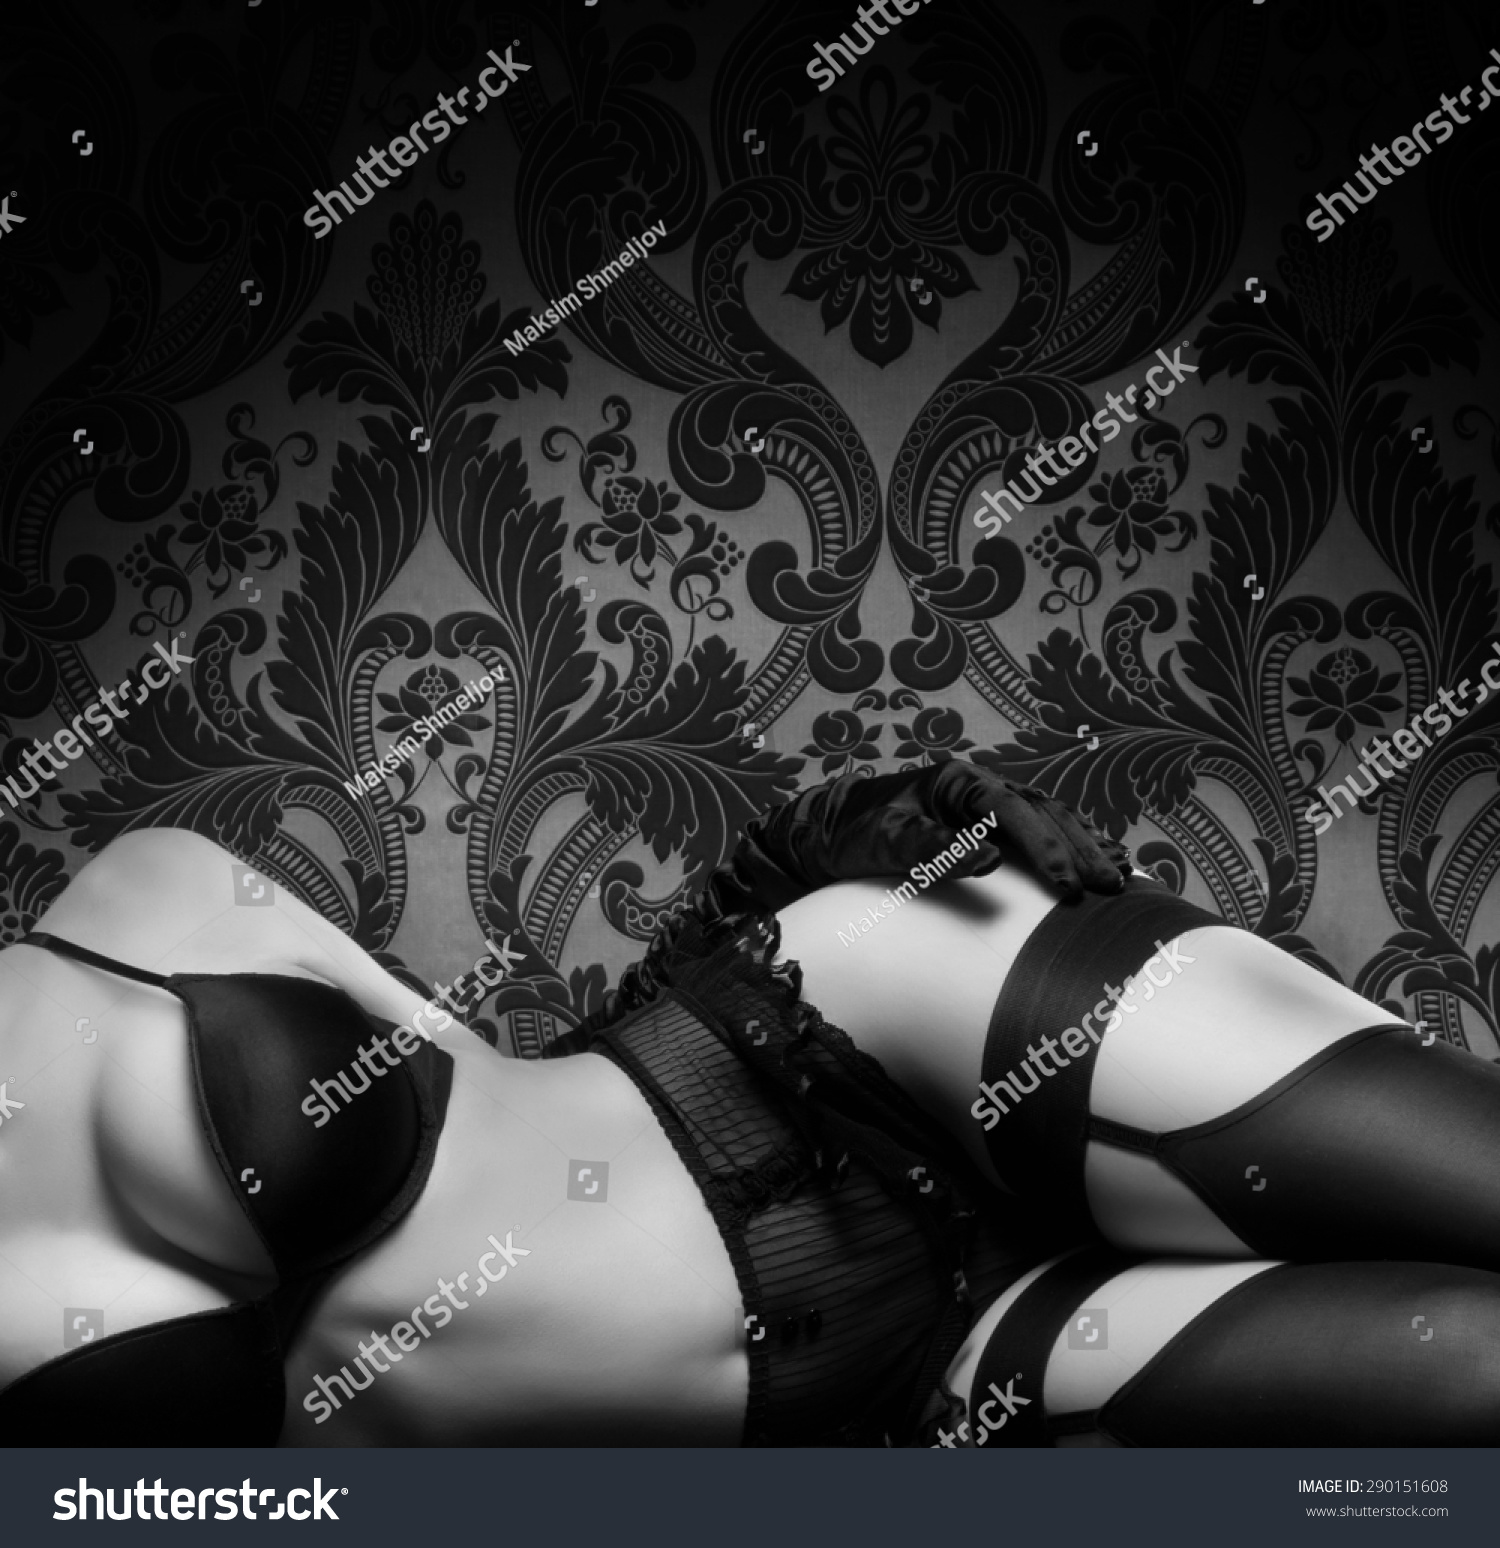 Retro styled black and white photo of a beautiful woman in a vintage sexy lingerie